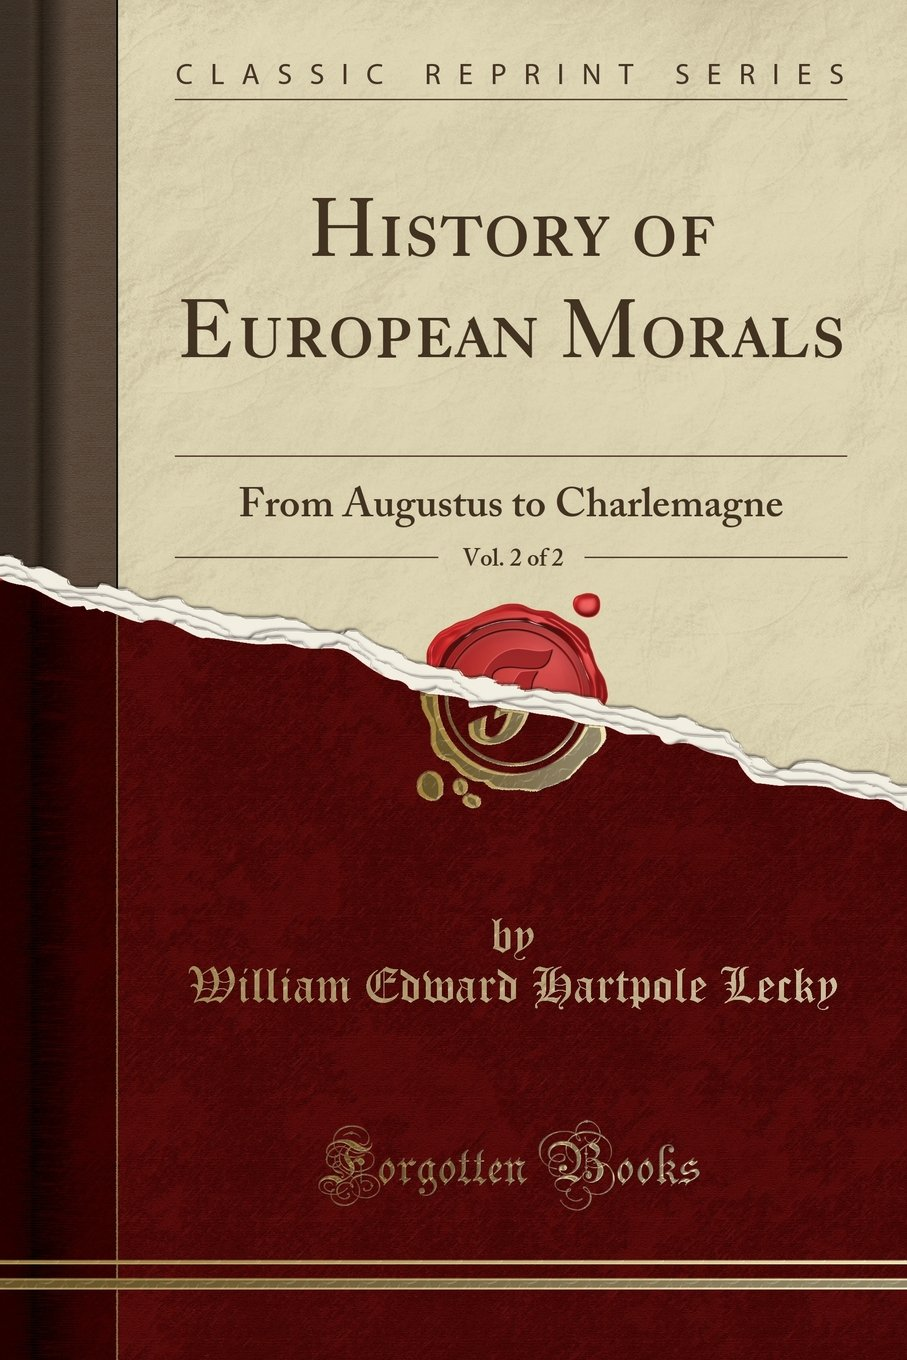 History of European Morals, Vol. 2 of 2: From Augustus to Charlemagne (Classic Reprint) PDF